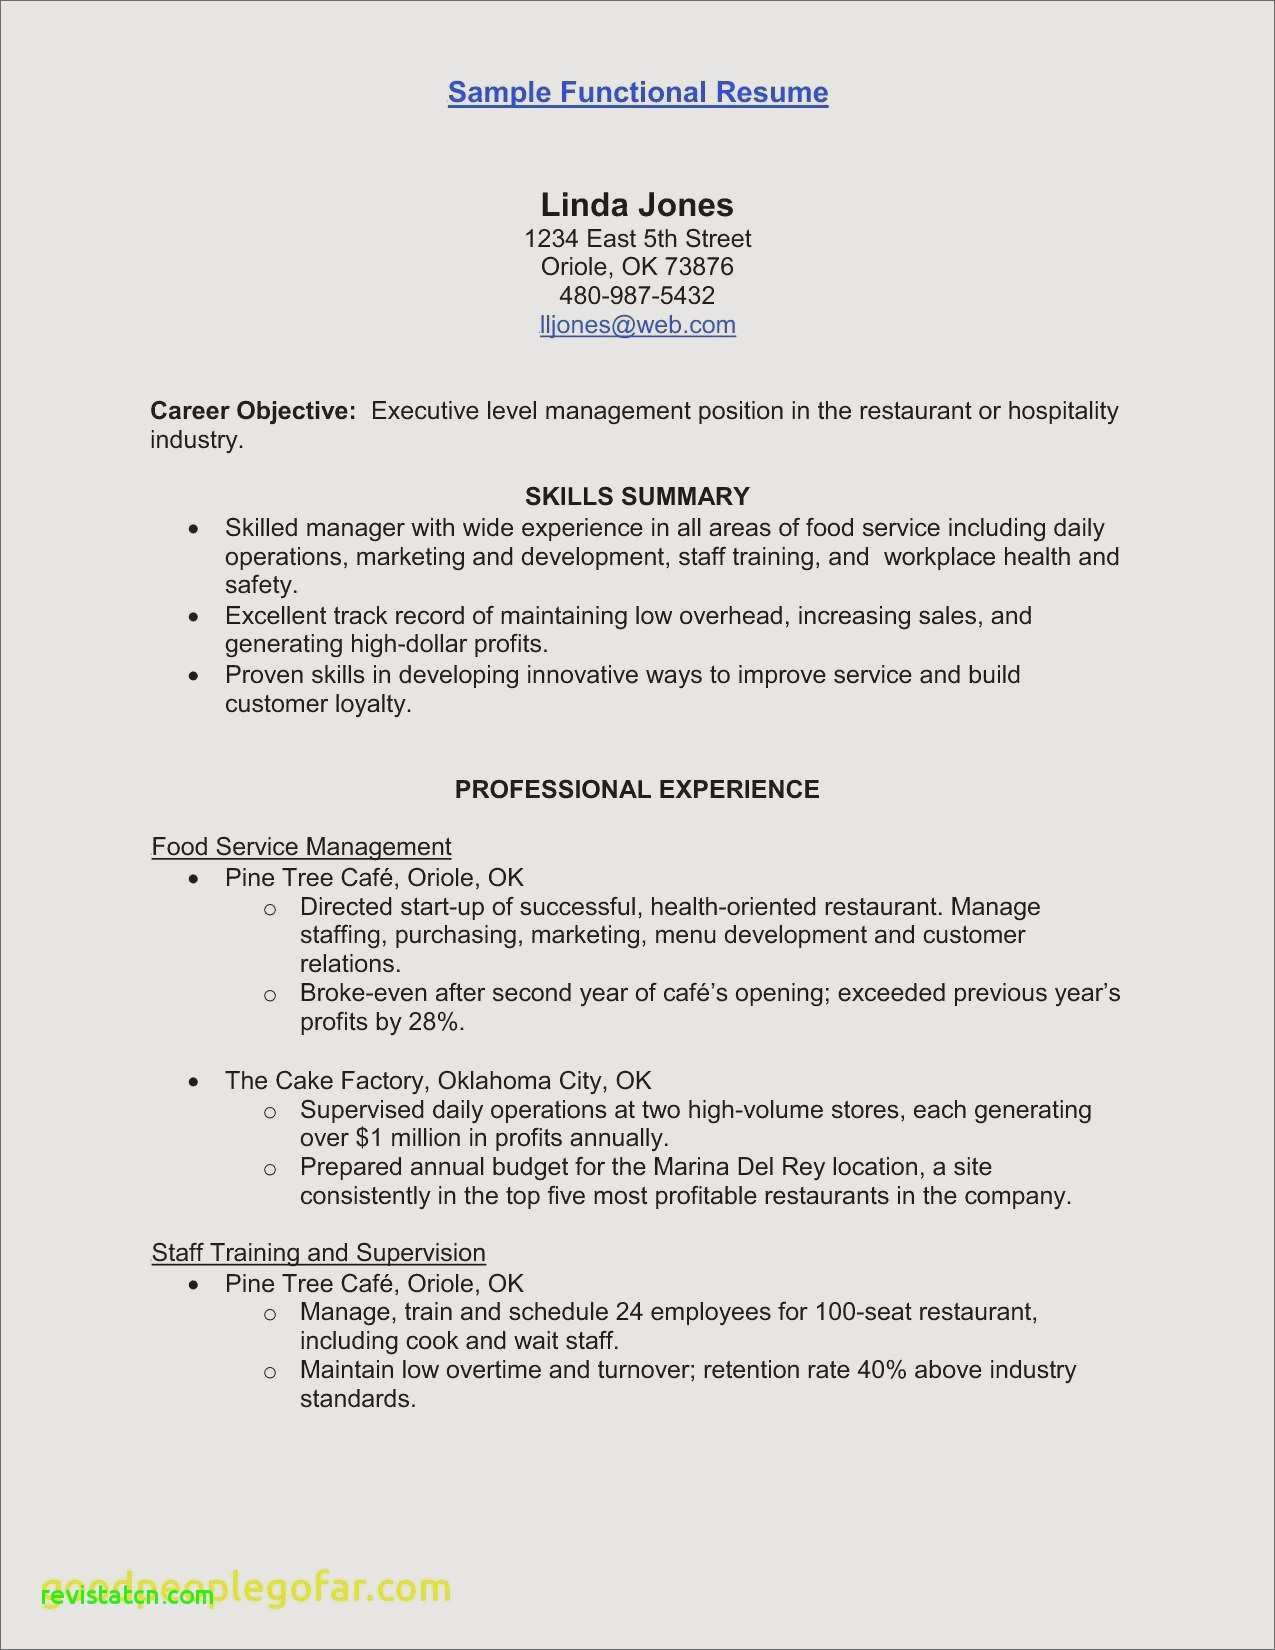 Surgical Technician Resume Template - Elegant Cool New Technology Intended for Cozy Med Tech Resume Sample